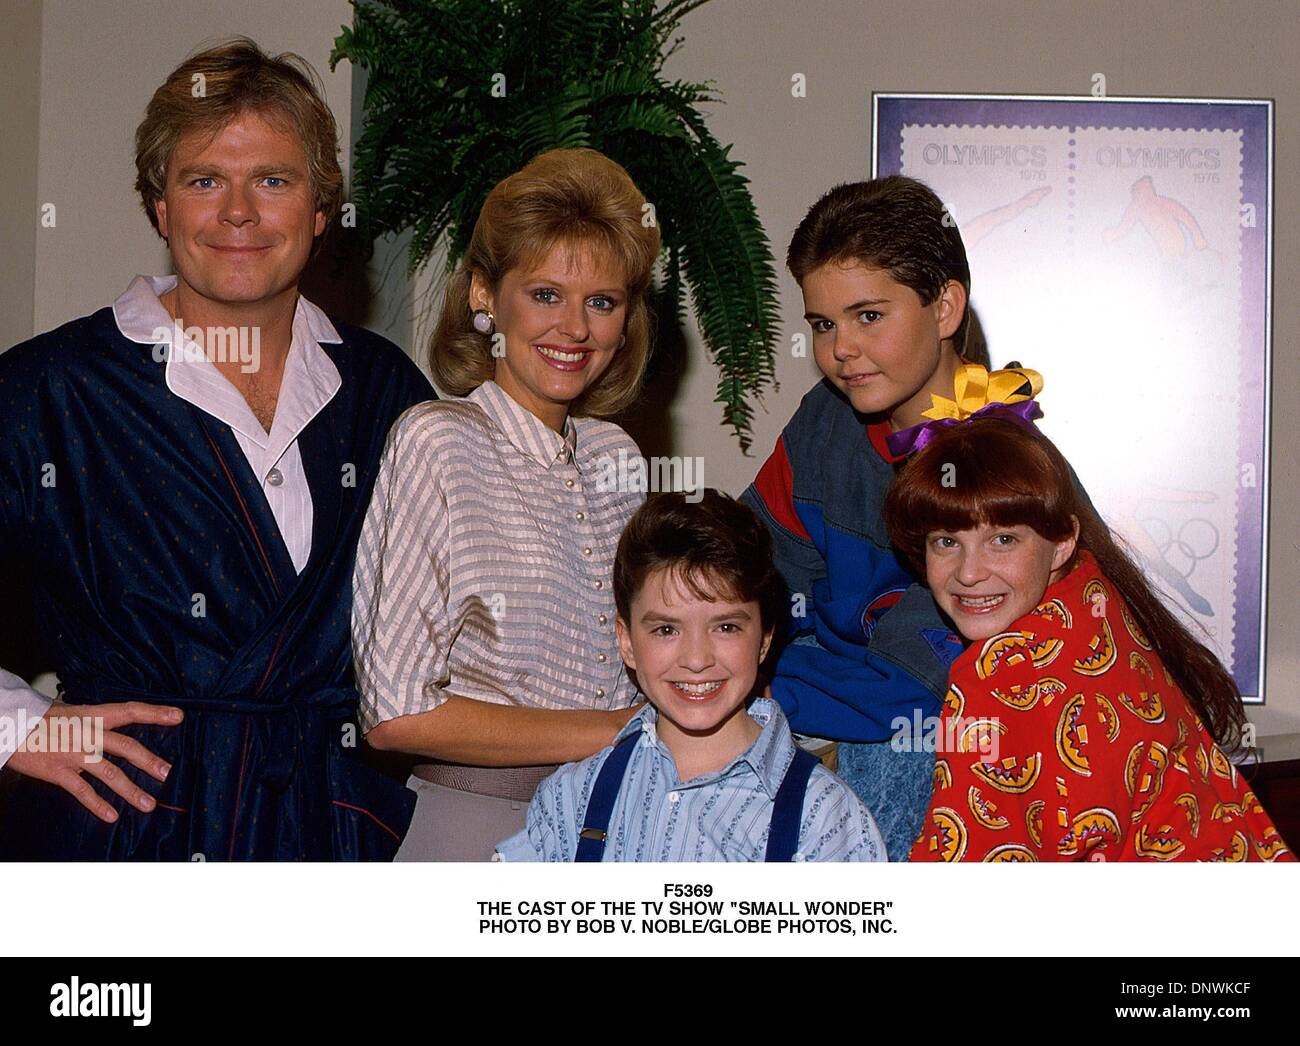 Apr  30, 2001 - F5369 THE CAST OF THE TV SHOW ''SMALL WONDER